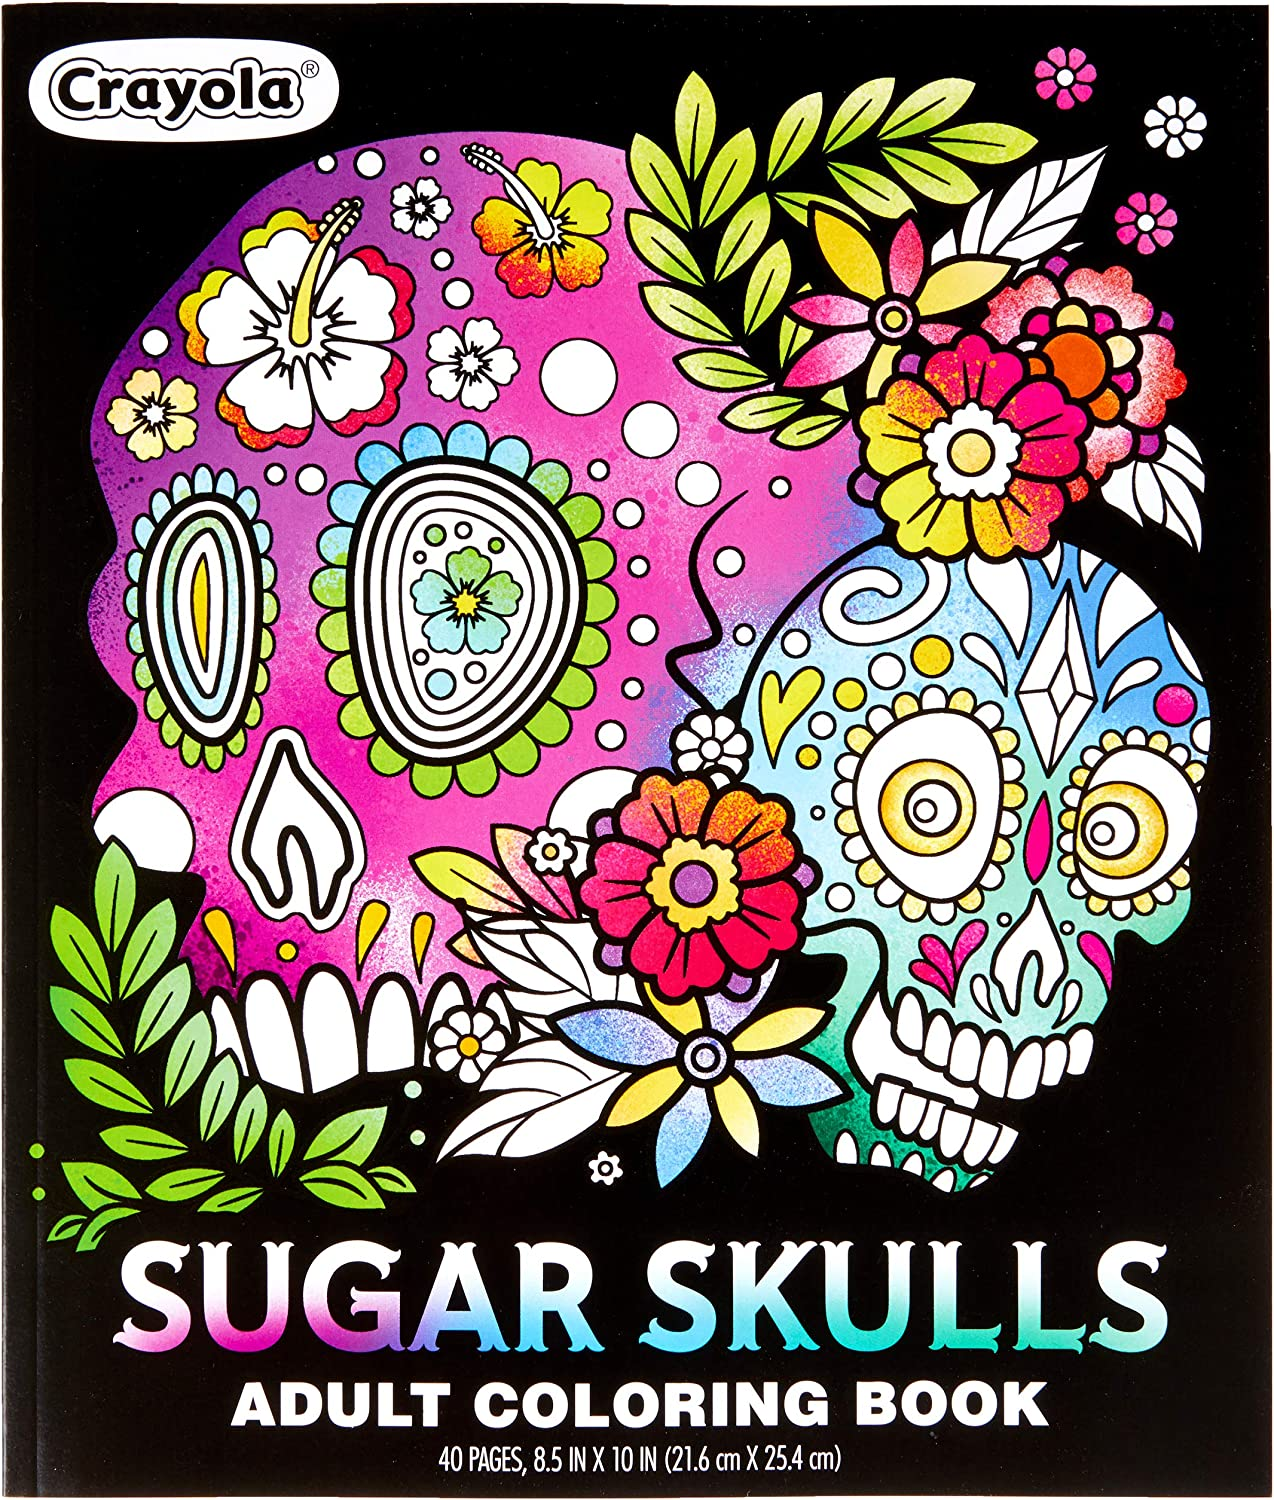 Chicago Mall Crayola Sugar Skulls Coloring Max 63% OFF Book Teens Gift 40 for